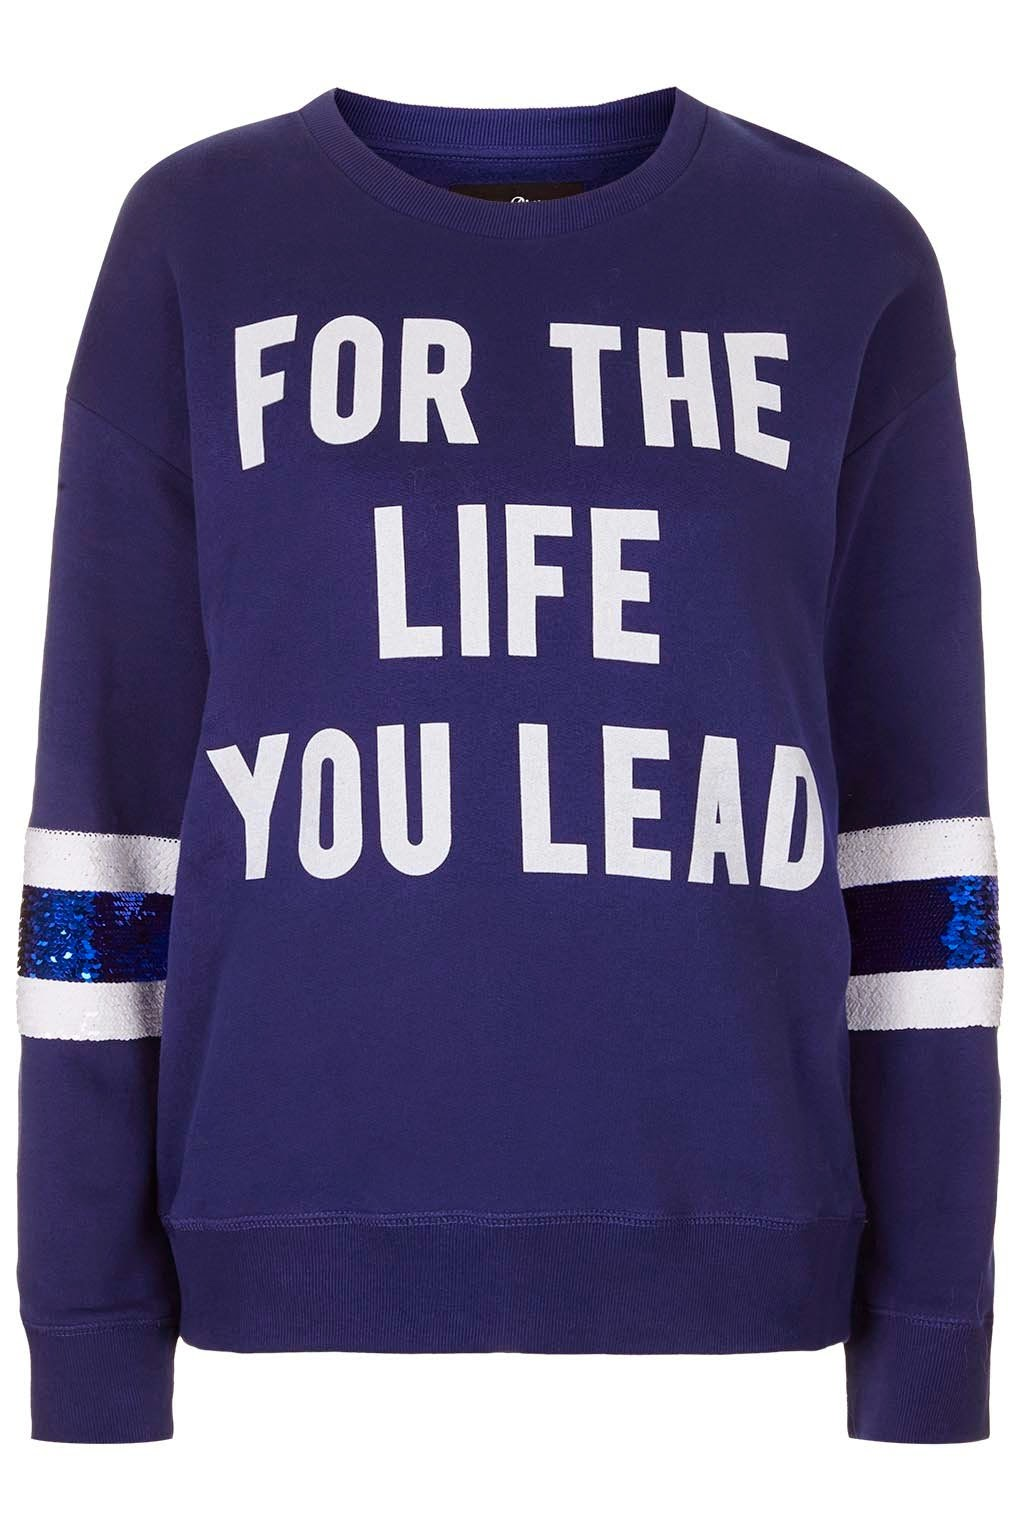 life slogan jumper